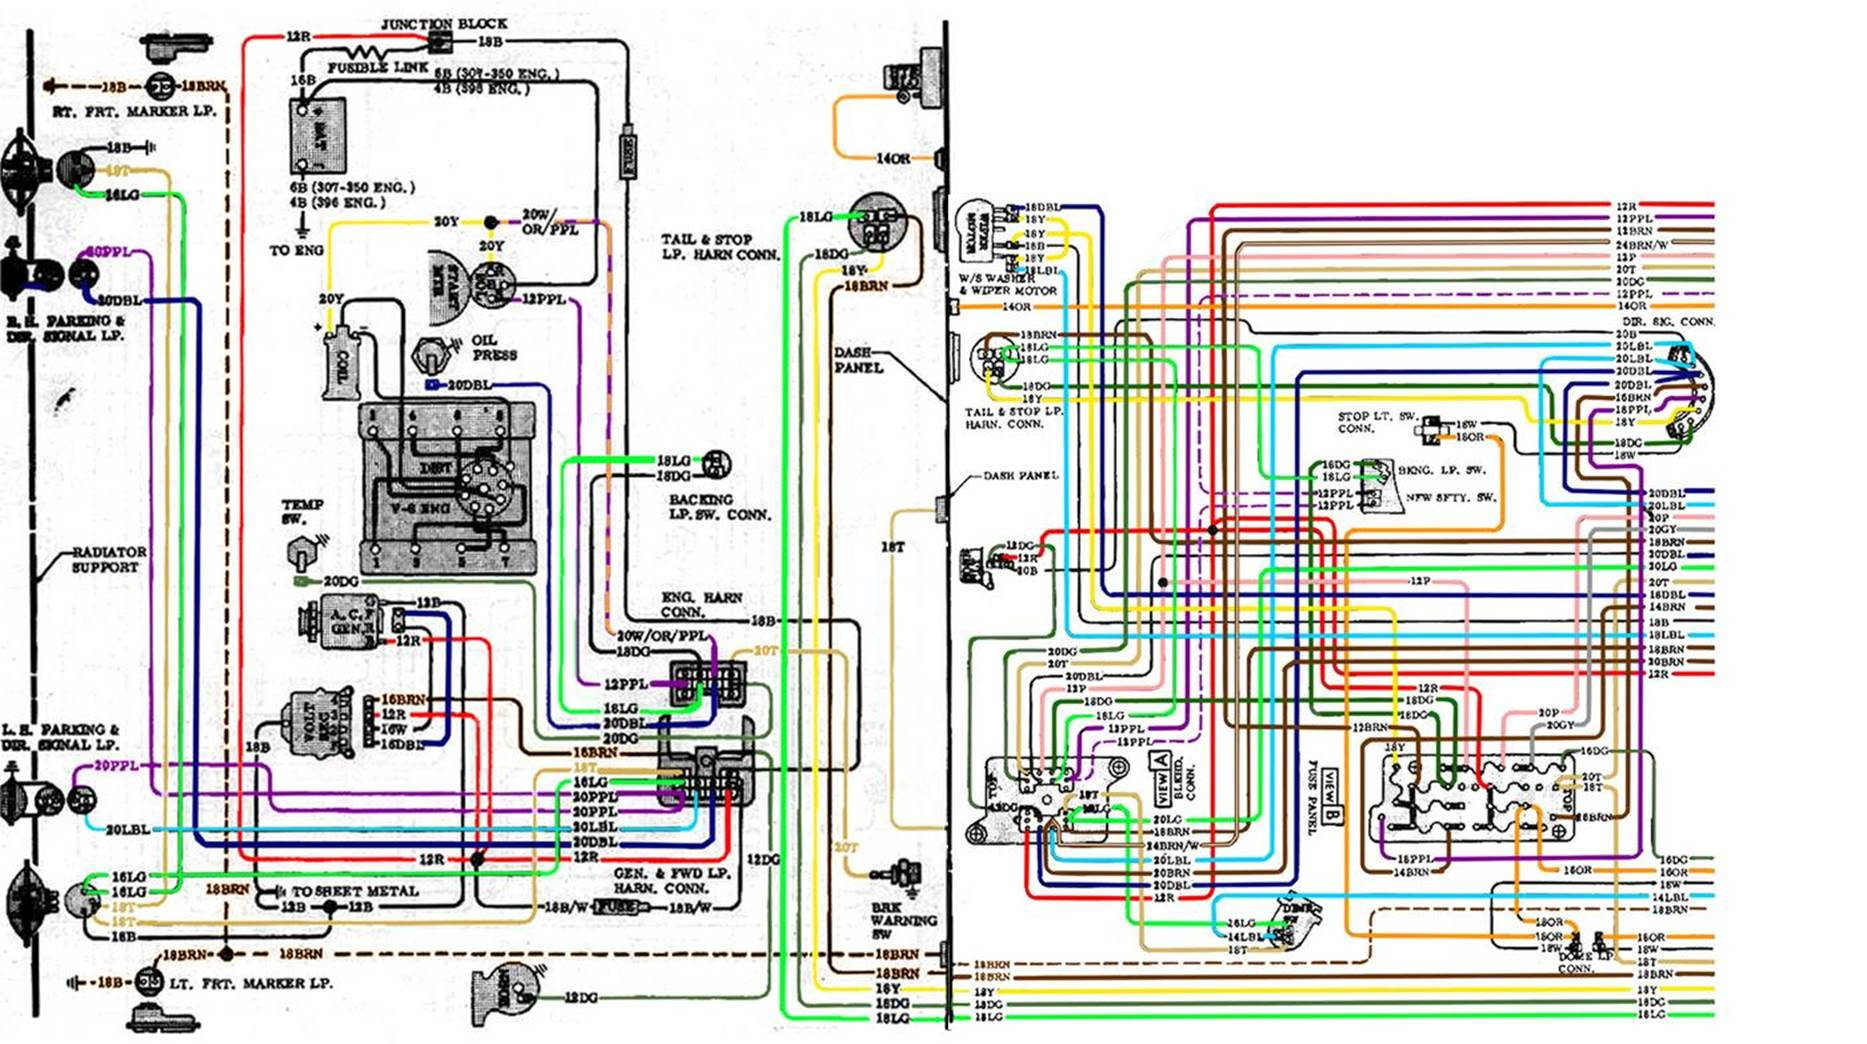 67 72 chevy wiring diagram rh outintheshop com 1971 Chevelle Wiring Diagram 1966 Chevelle Wiring Diagram